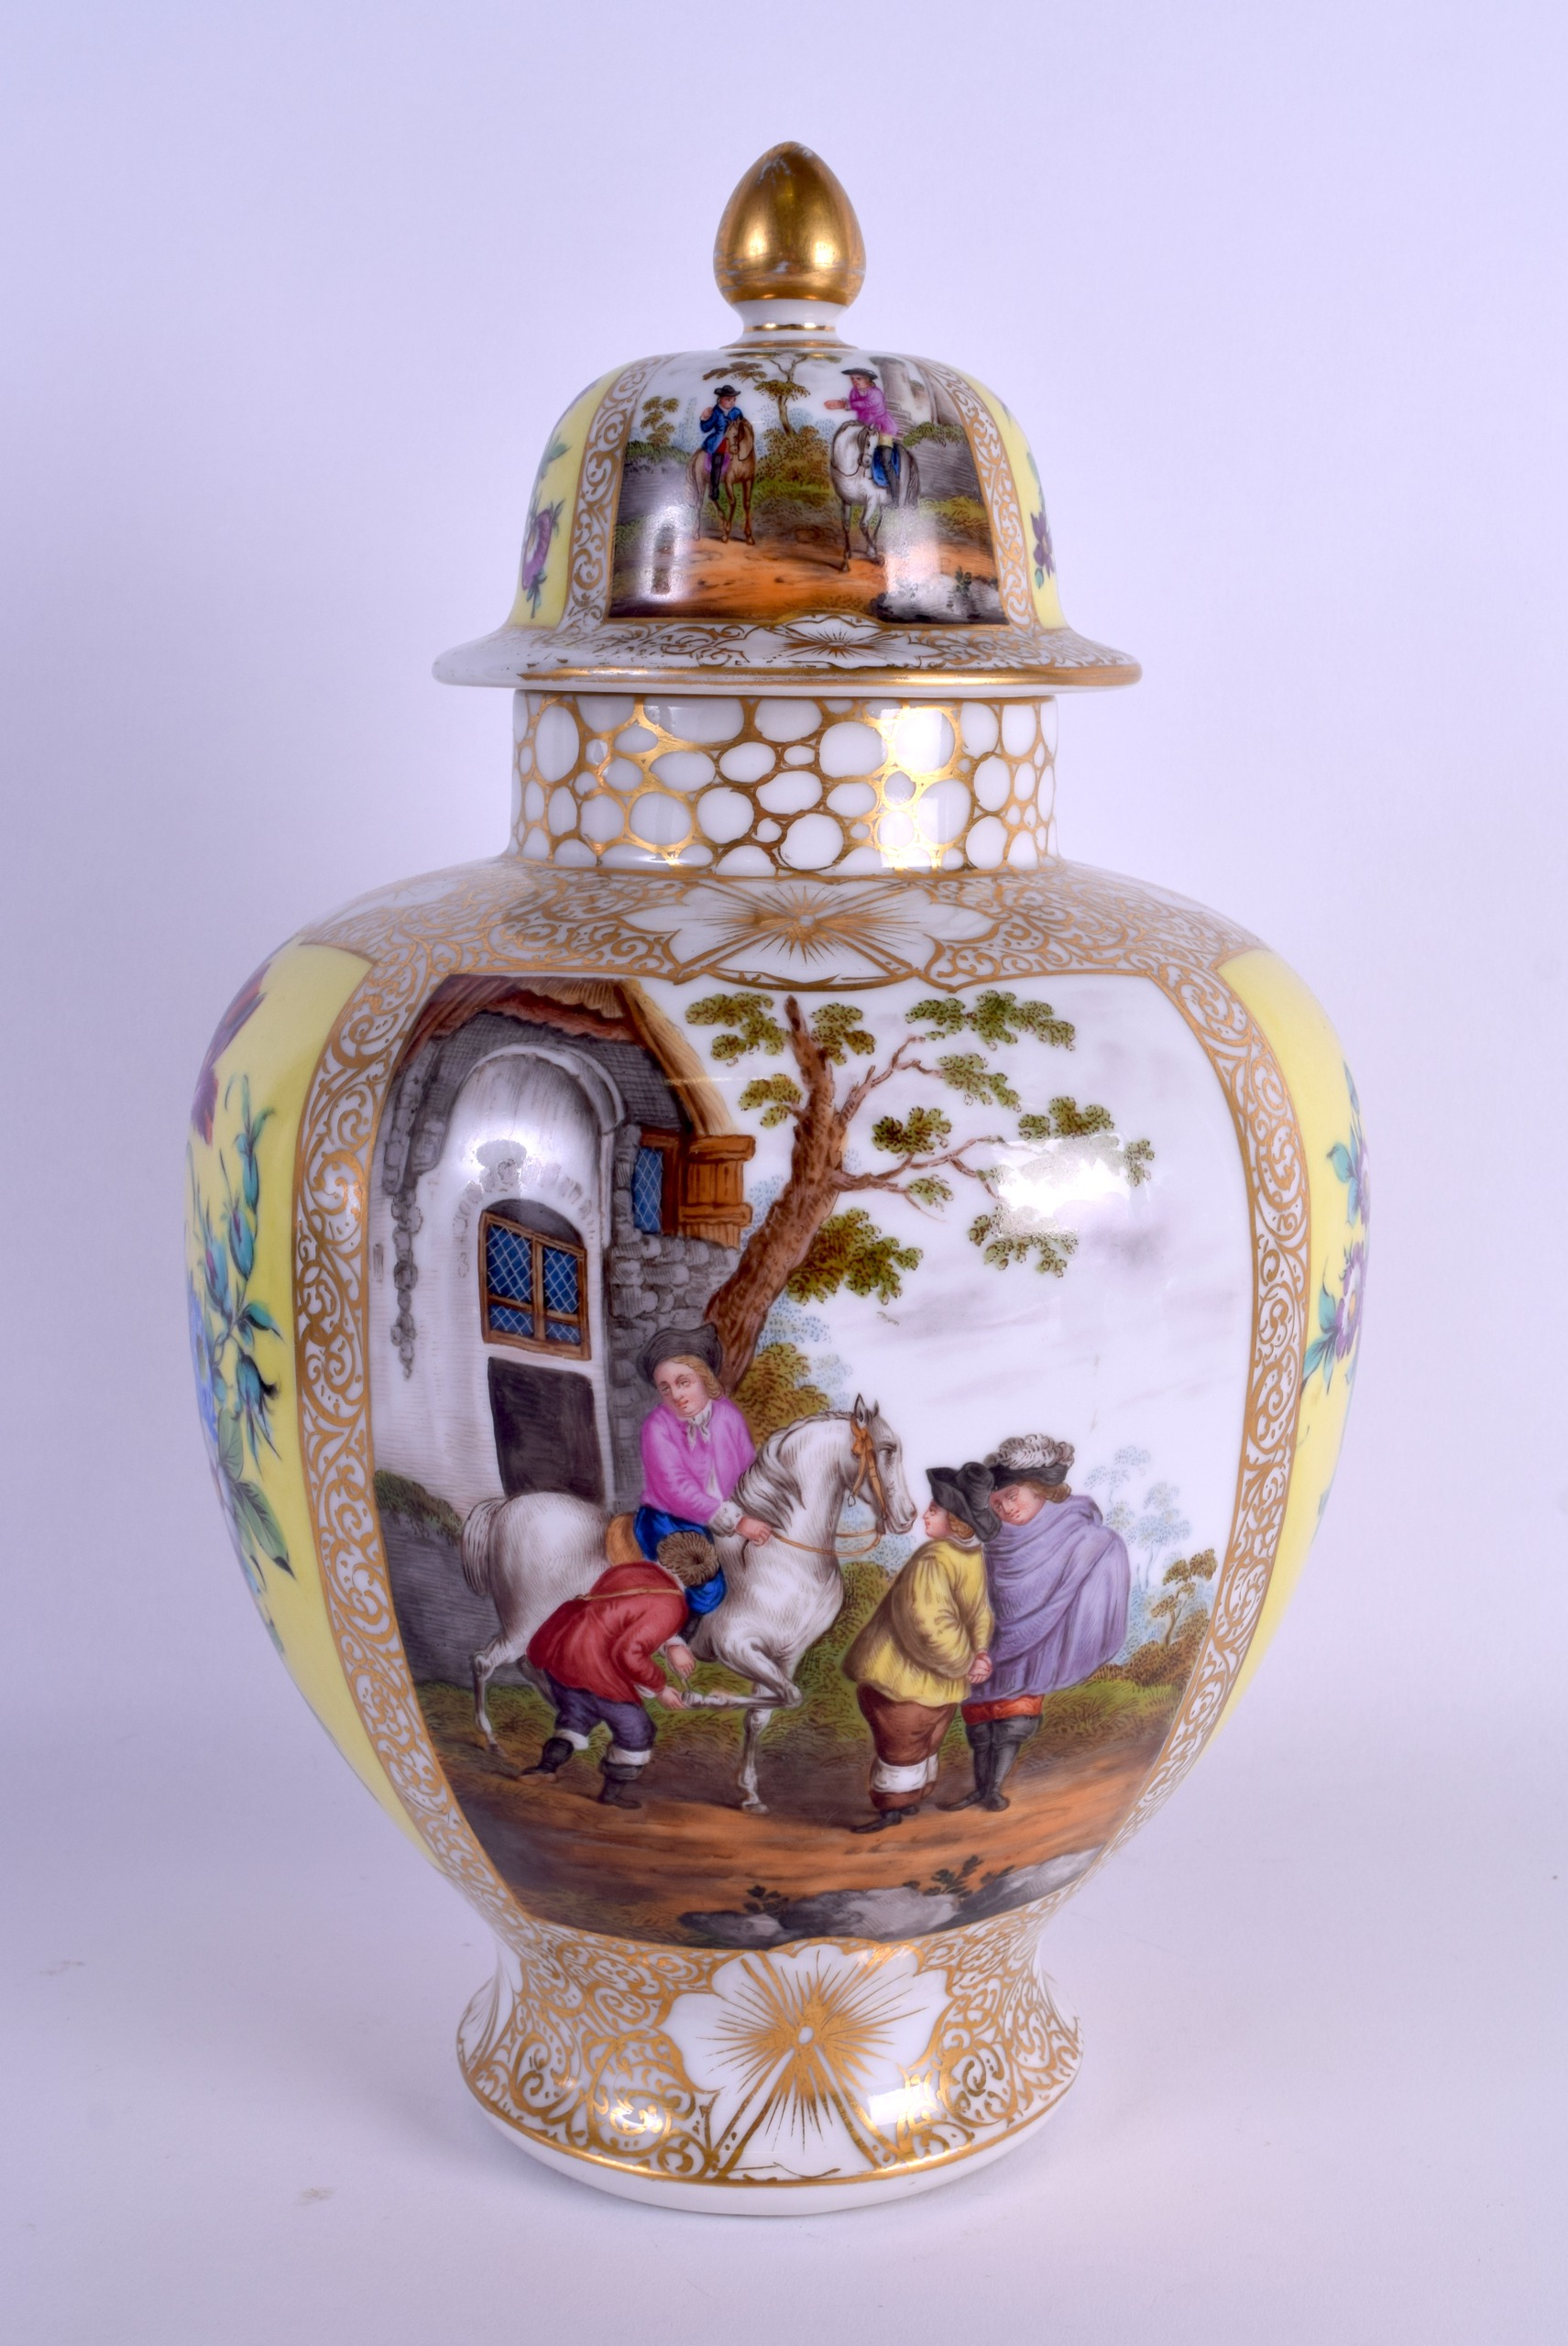 Lot 50 - A 19TH CENTURY GERMAN AUGUSTUS REX PORCELAIN VASE AND COVER painted with figures and horses within